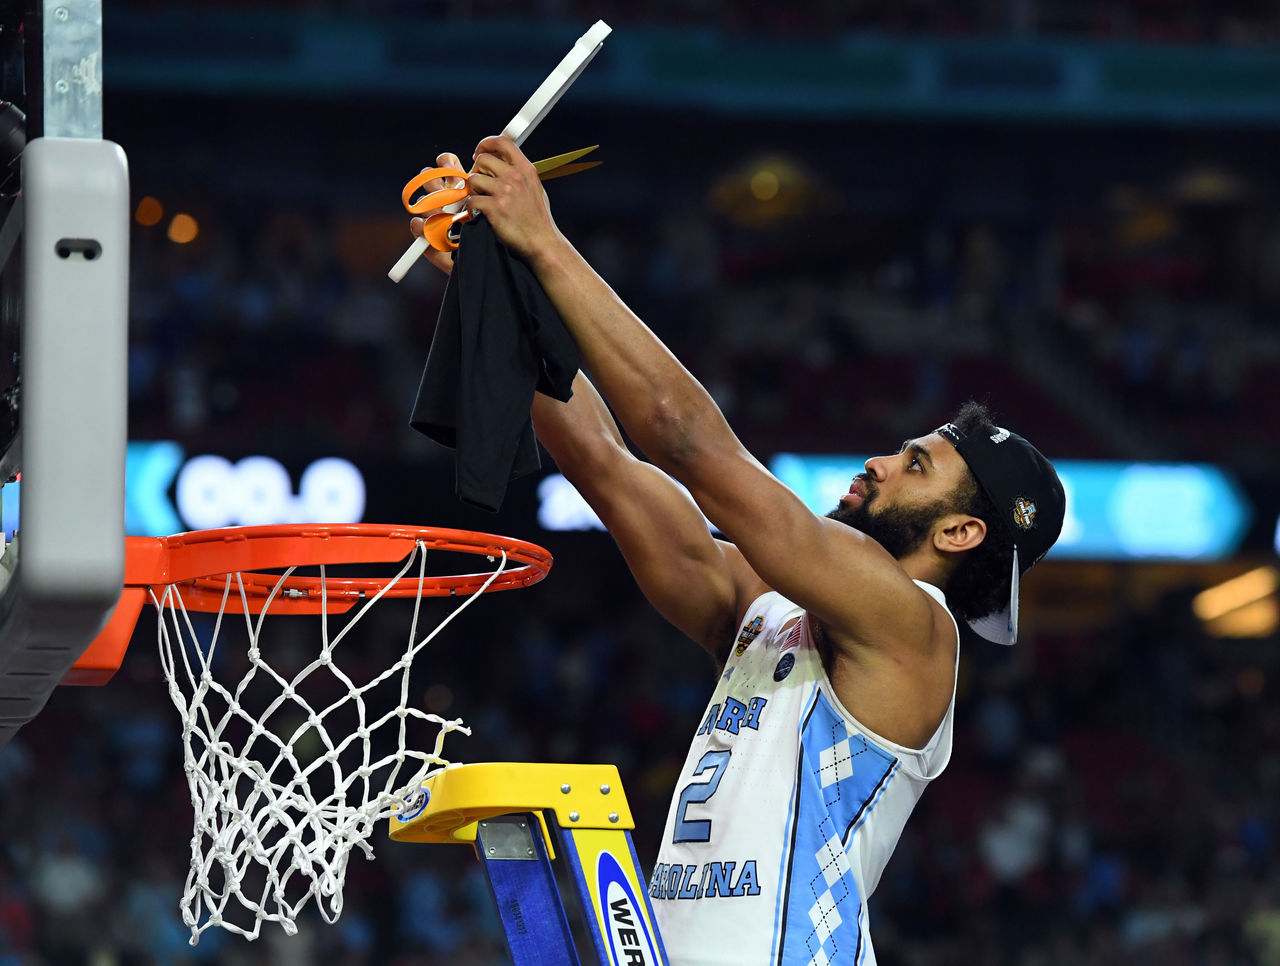 Cropped 2017 04 04t040401z 1528587886 nocid rtrmadp 3 ncaa basketball final four championship game gonzaga vs north carolina